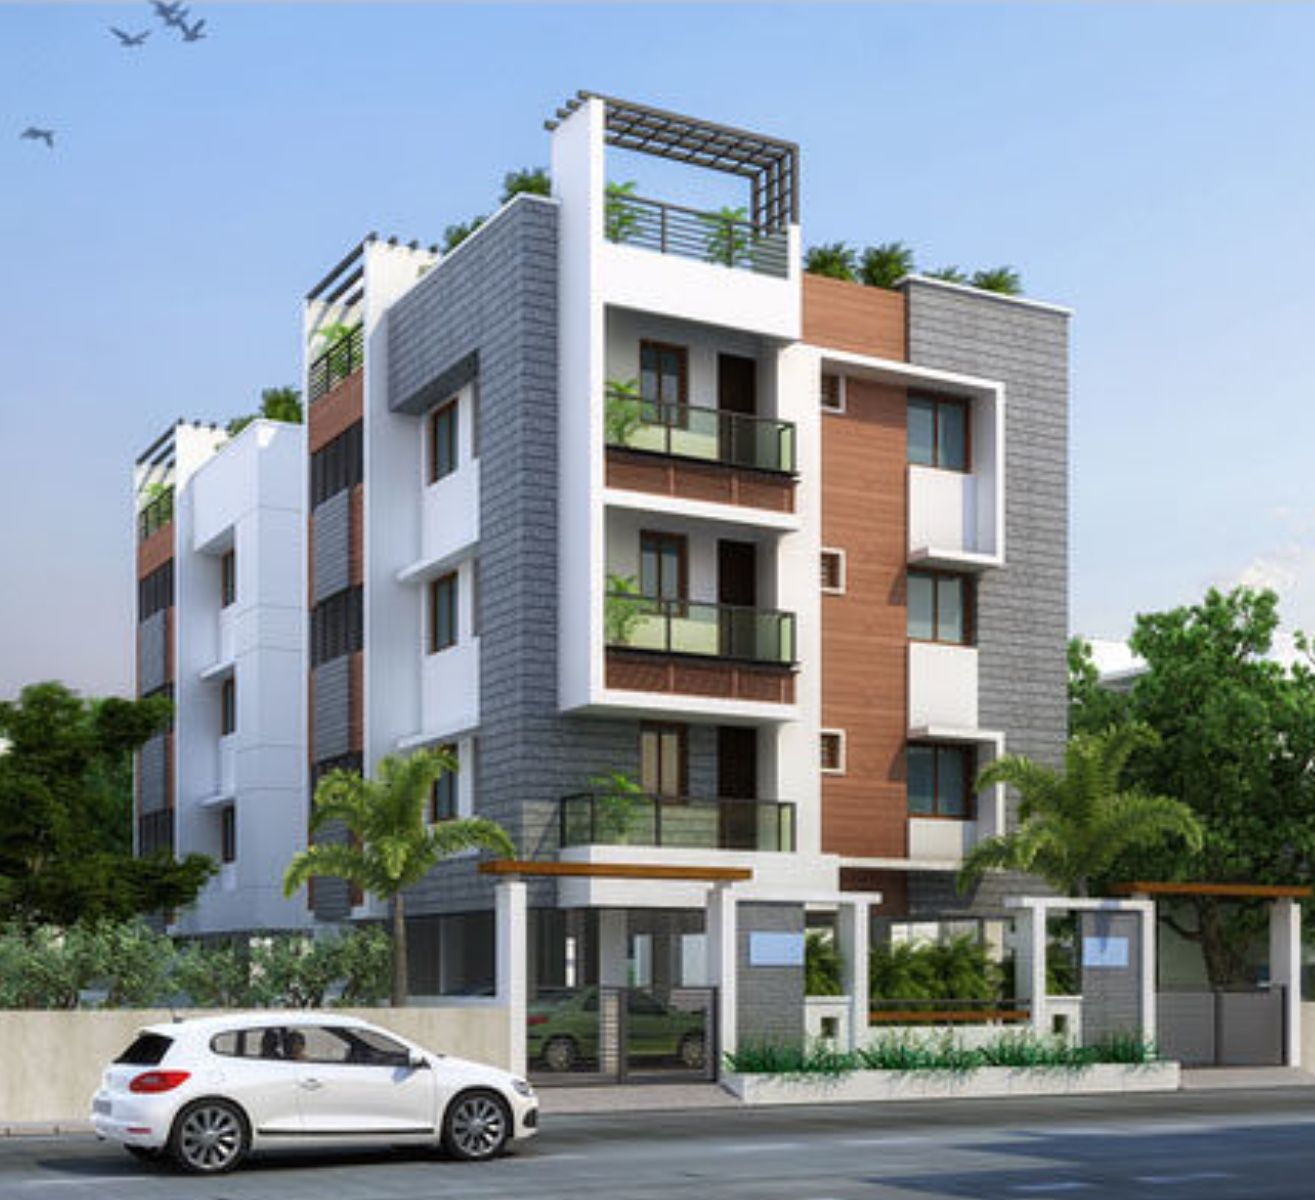 Apartments | Residential building design, Residential ...